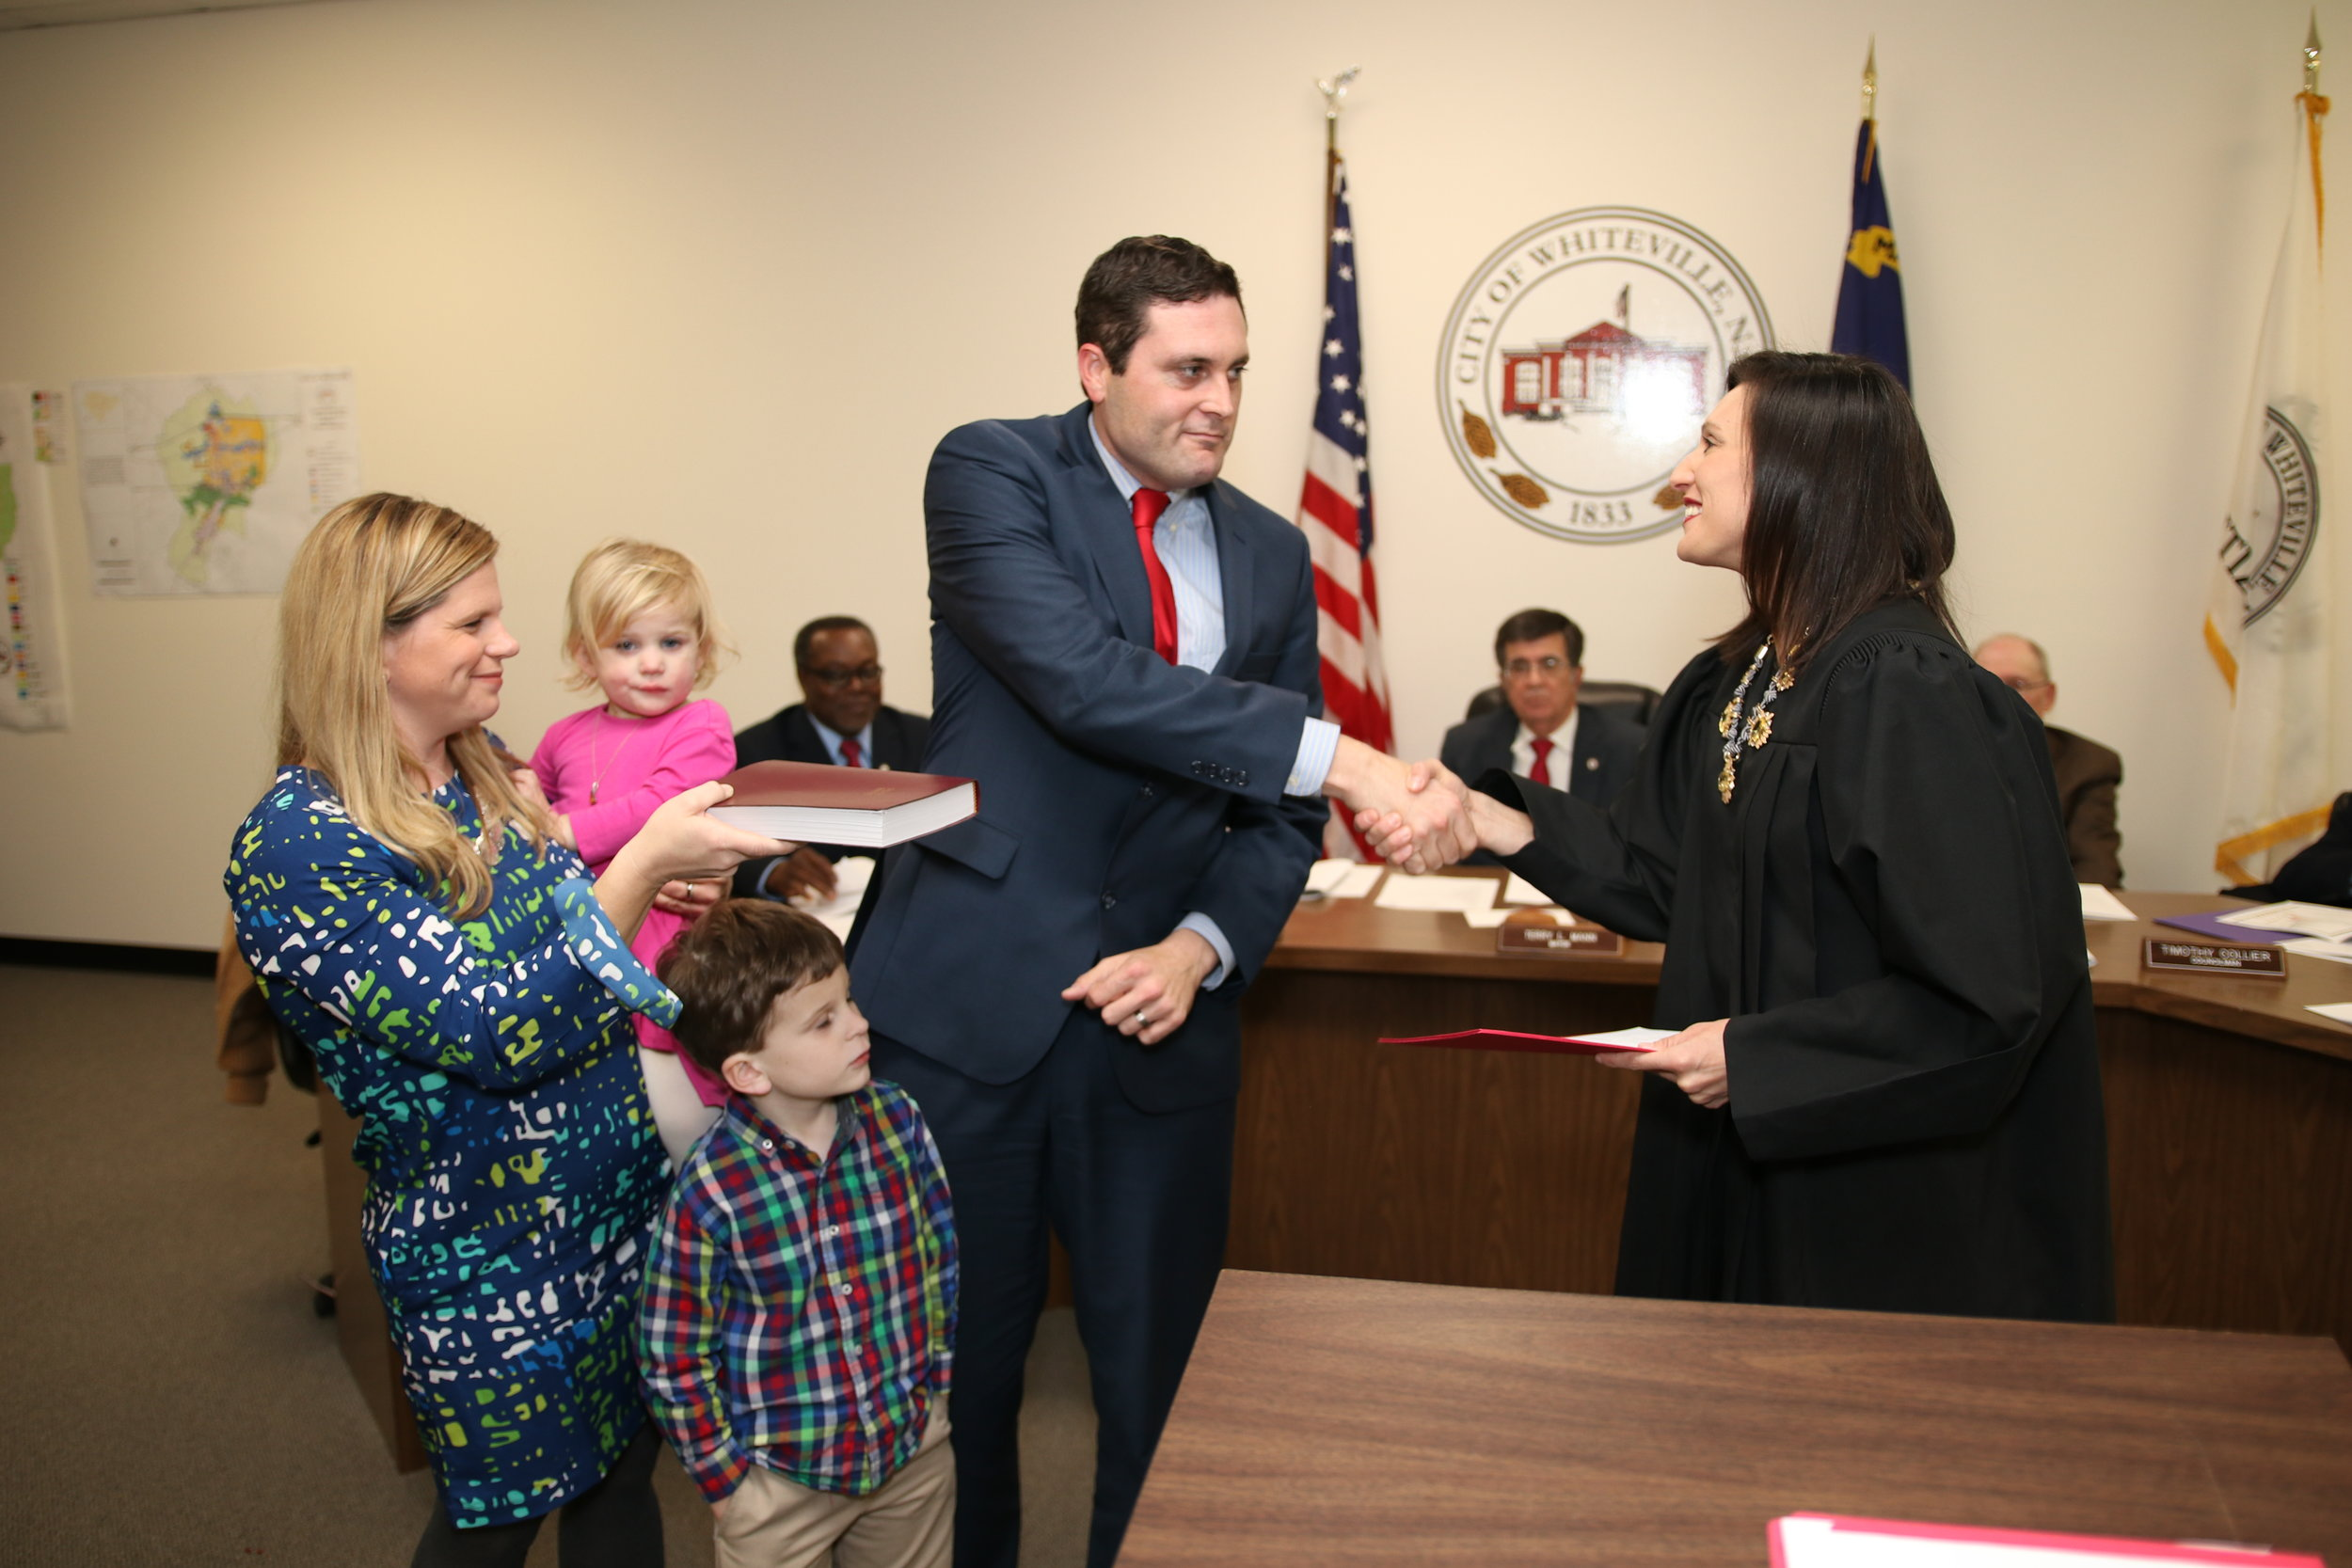 Justin Smith sworn in by judge Ashley Gore